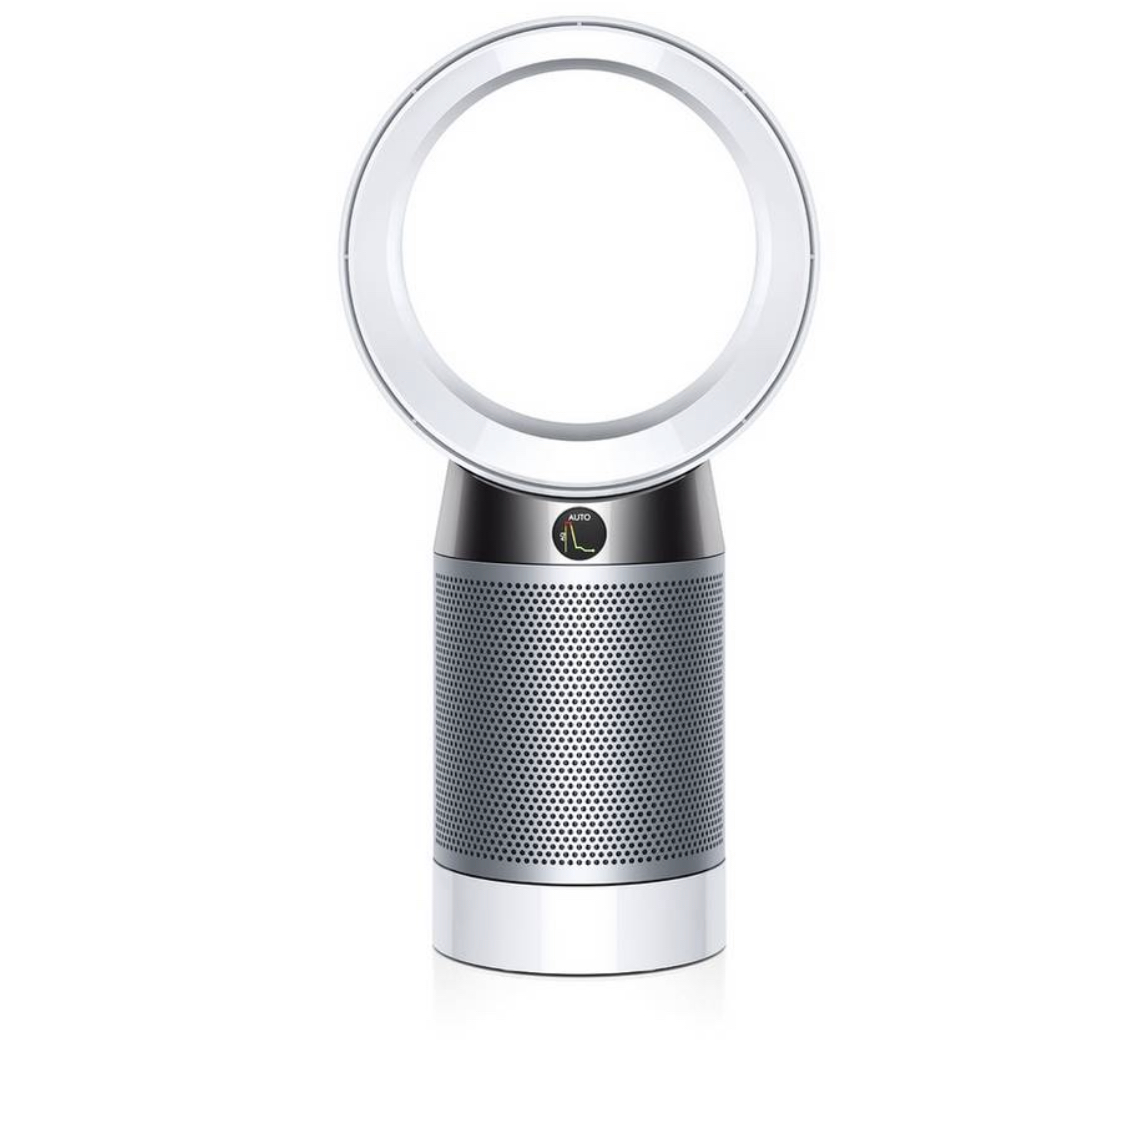 Dyson Pure Cool Desk Advanced Technology Air Purifier Fan